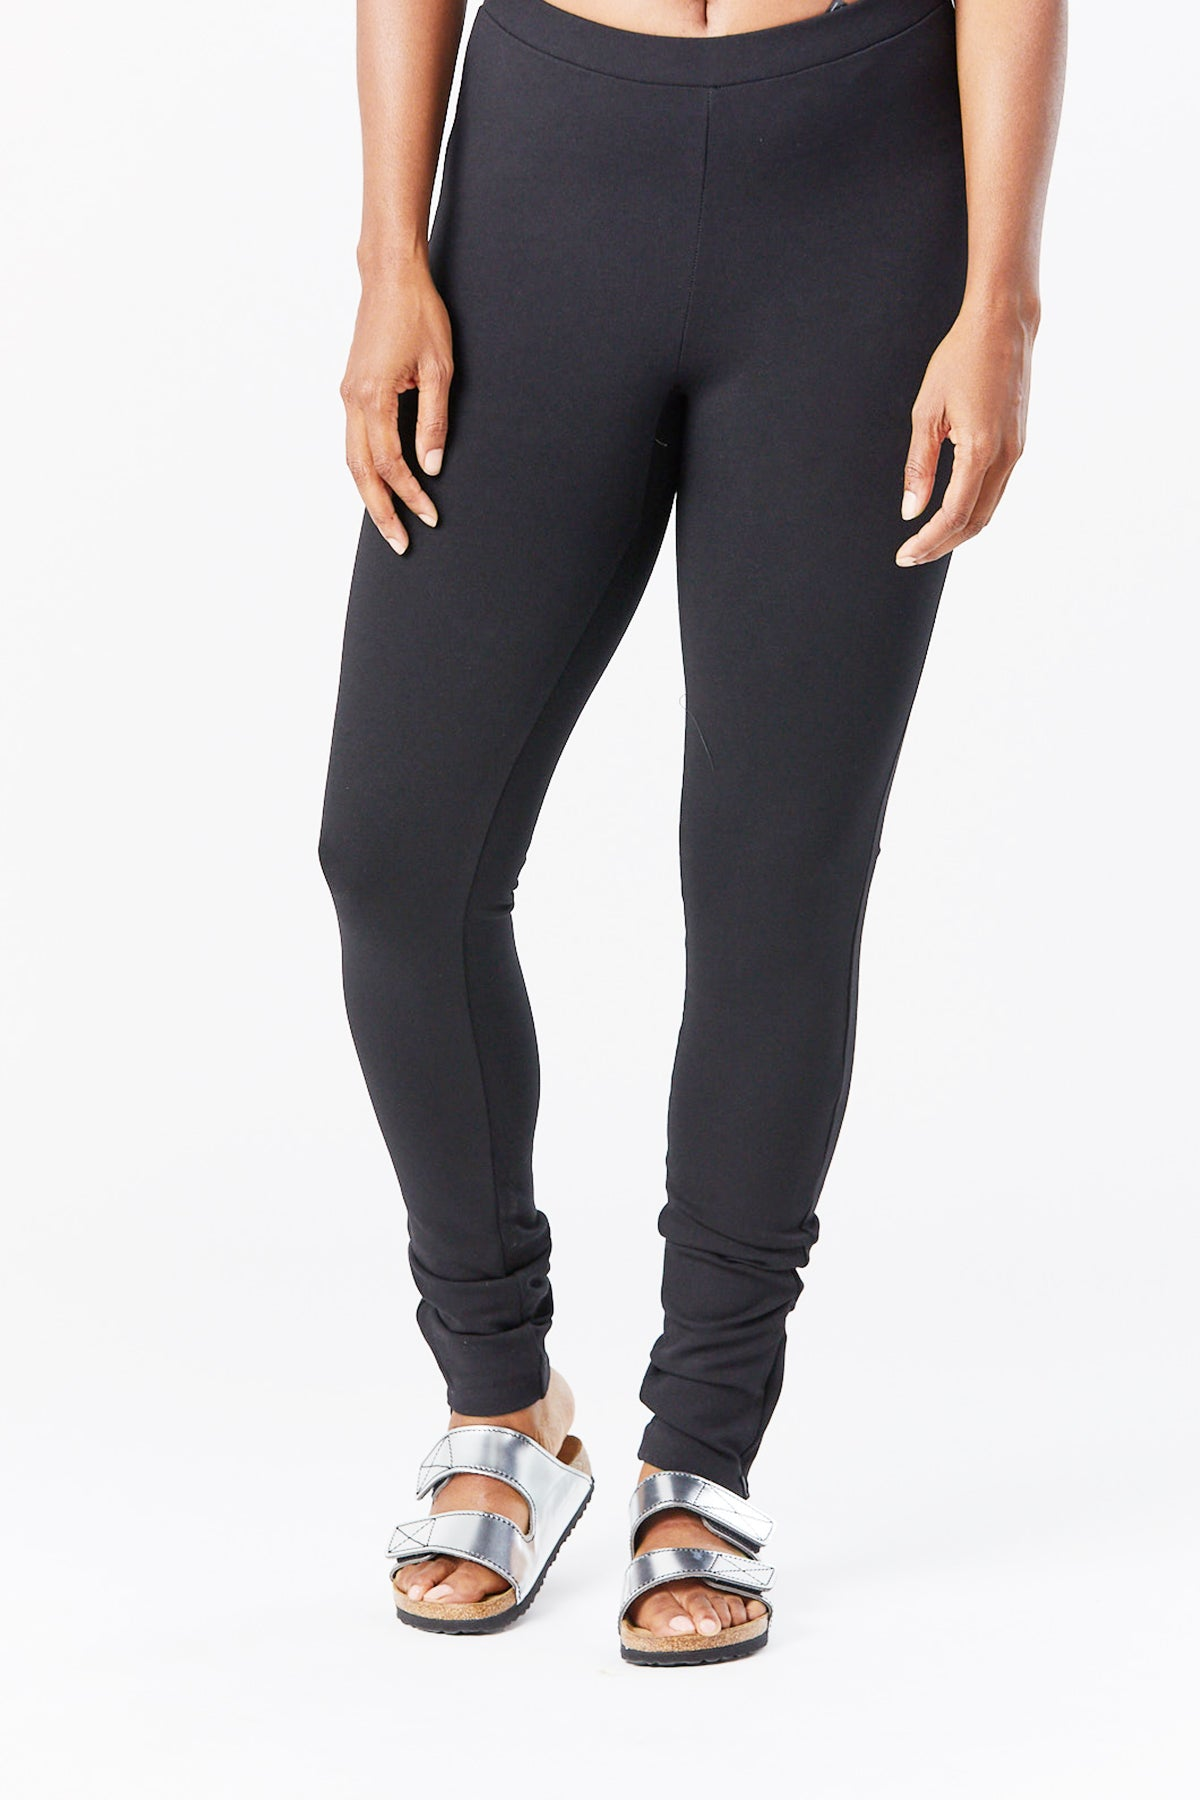 Totême - cork trouser, black